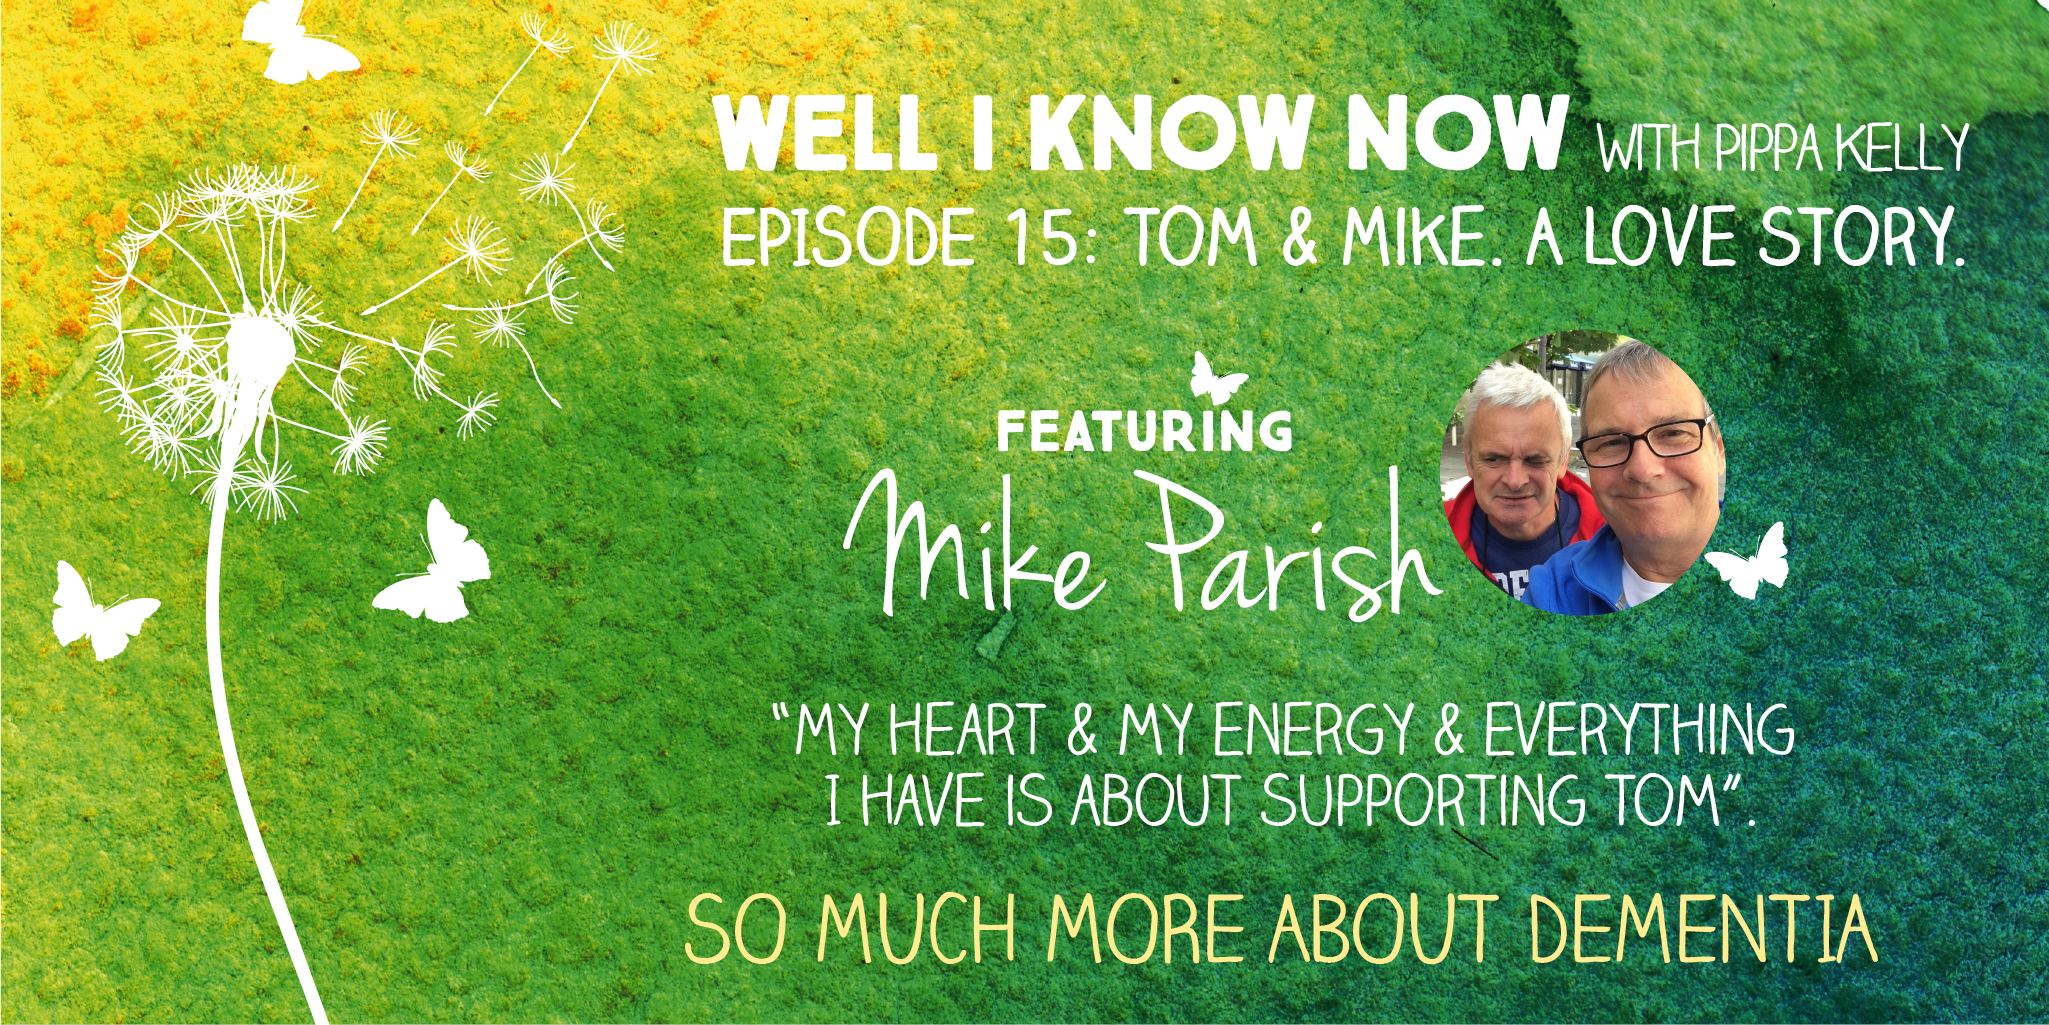 Mike & Tom. A love story.